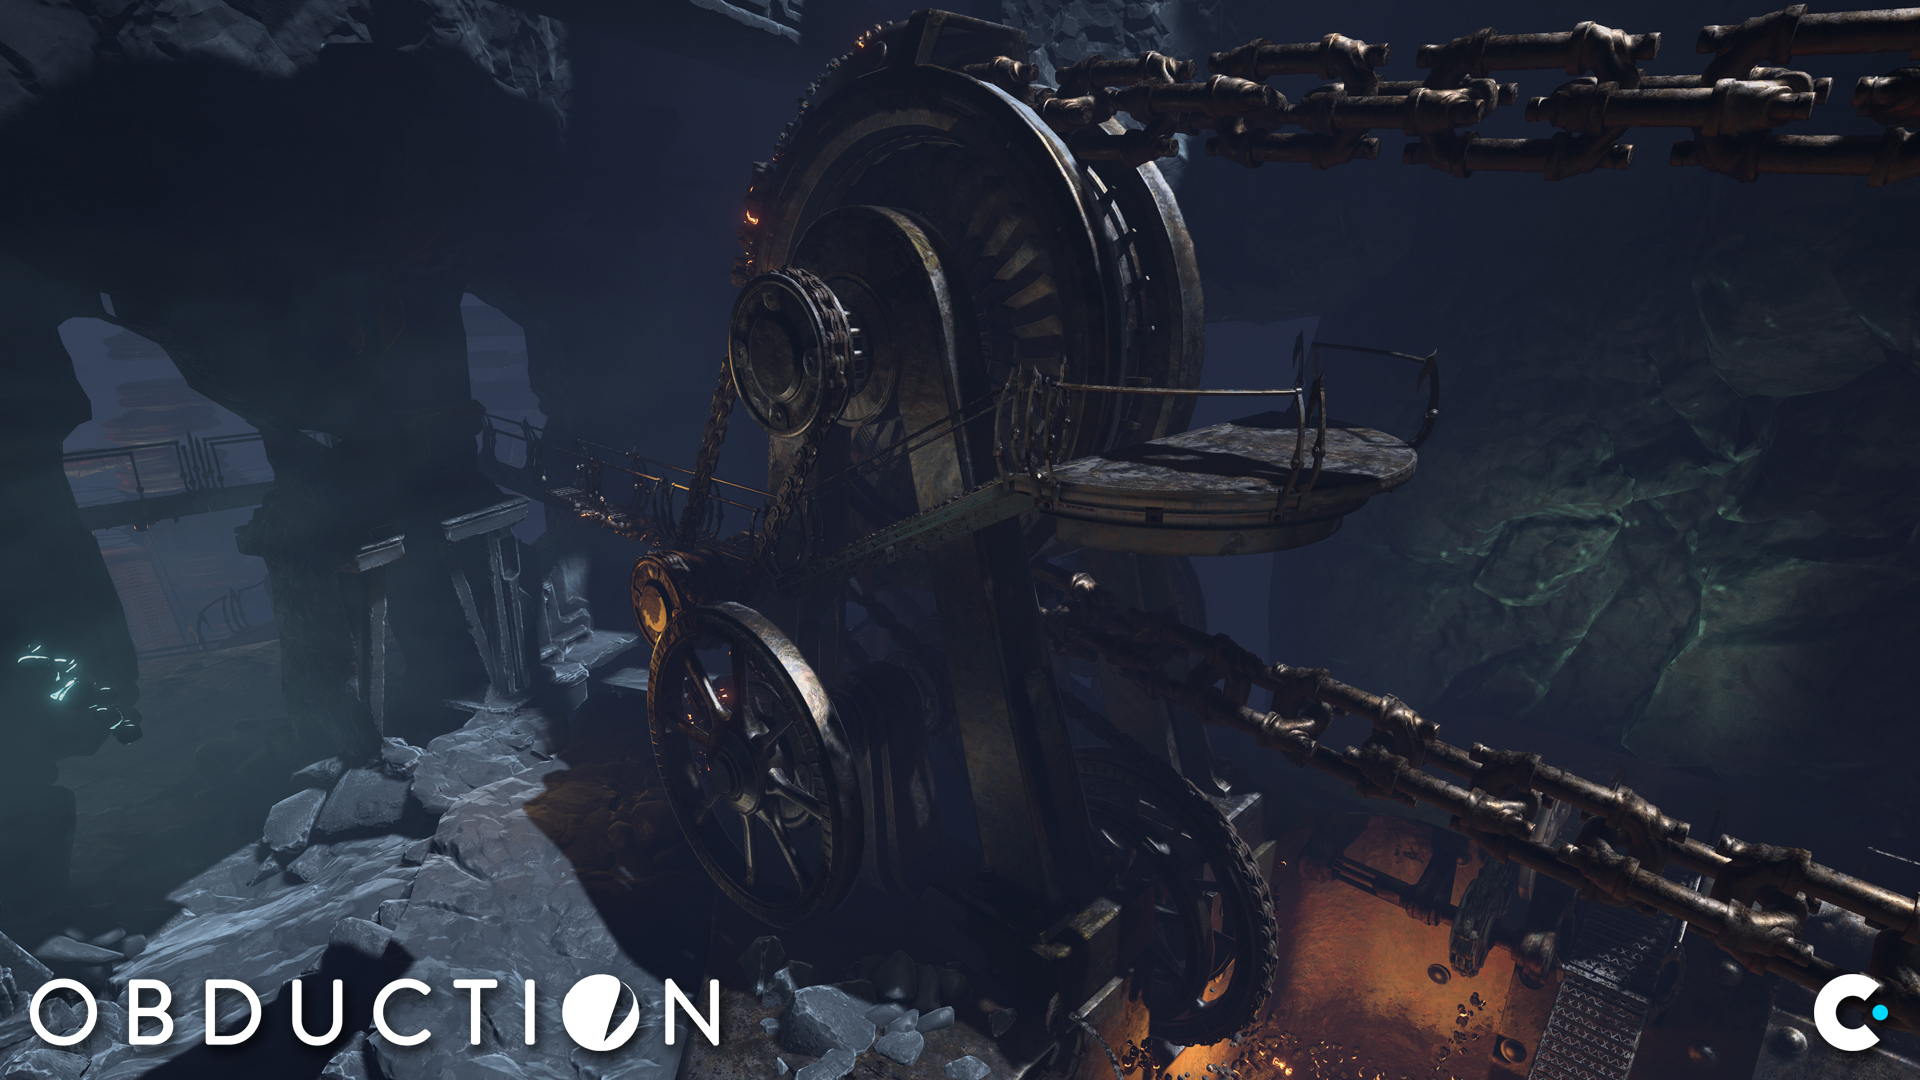 obduction game vr wallpaper 68023